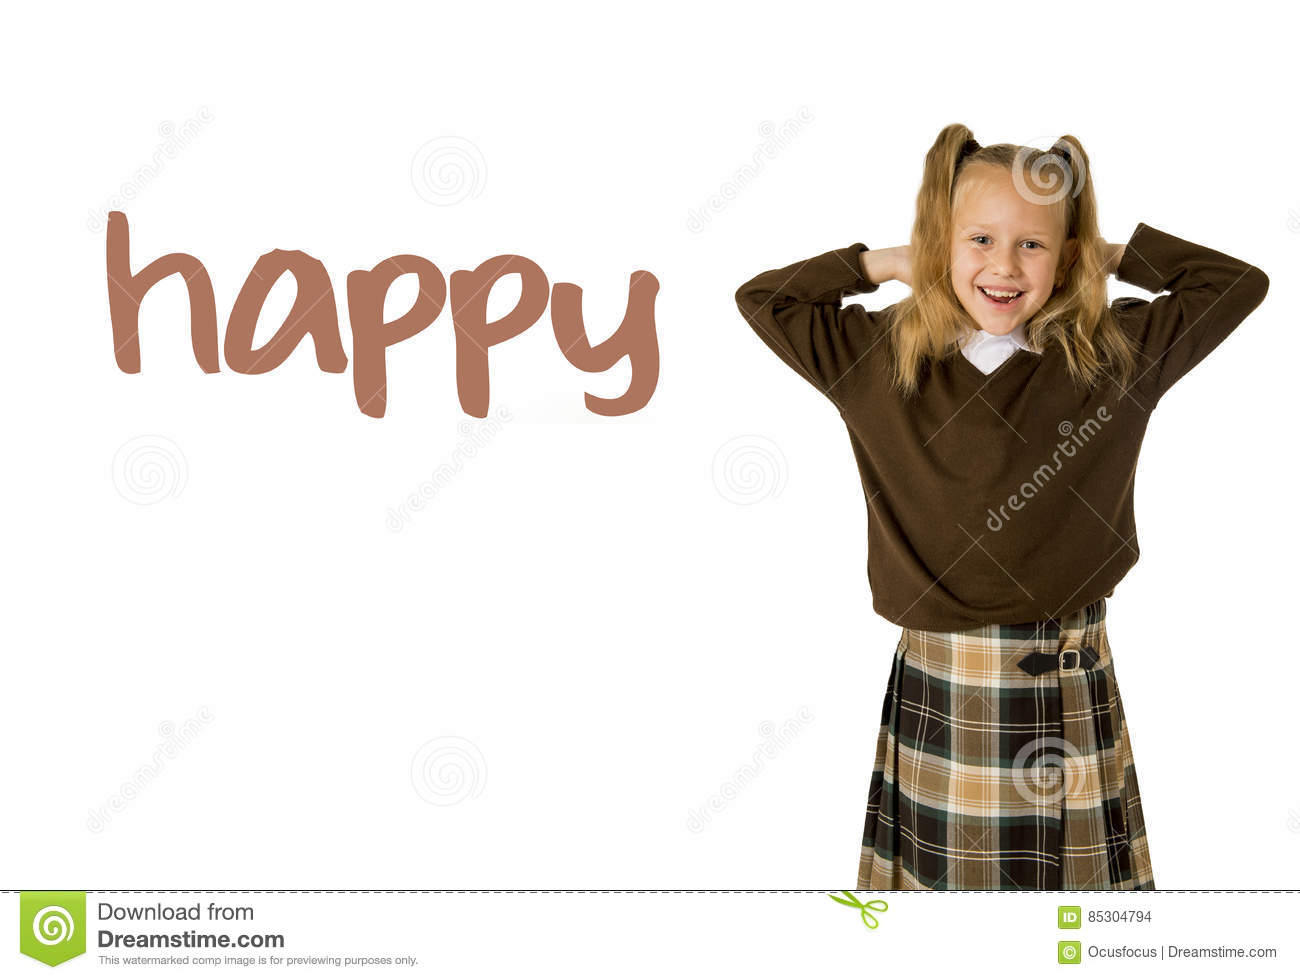 English language learning vocabulary school card of young beautiful happy female child